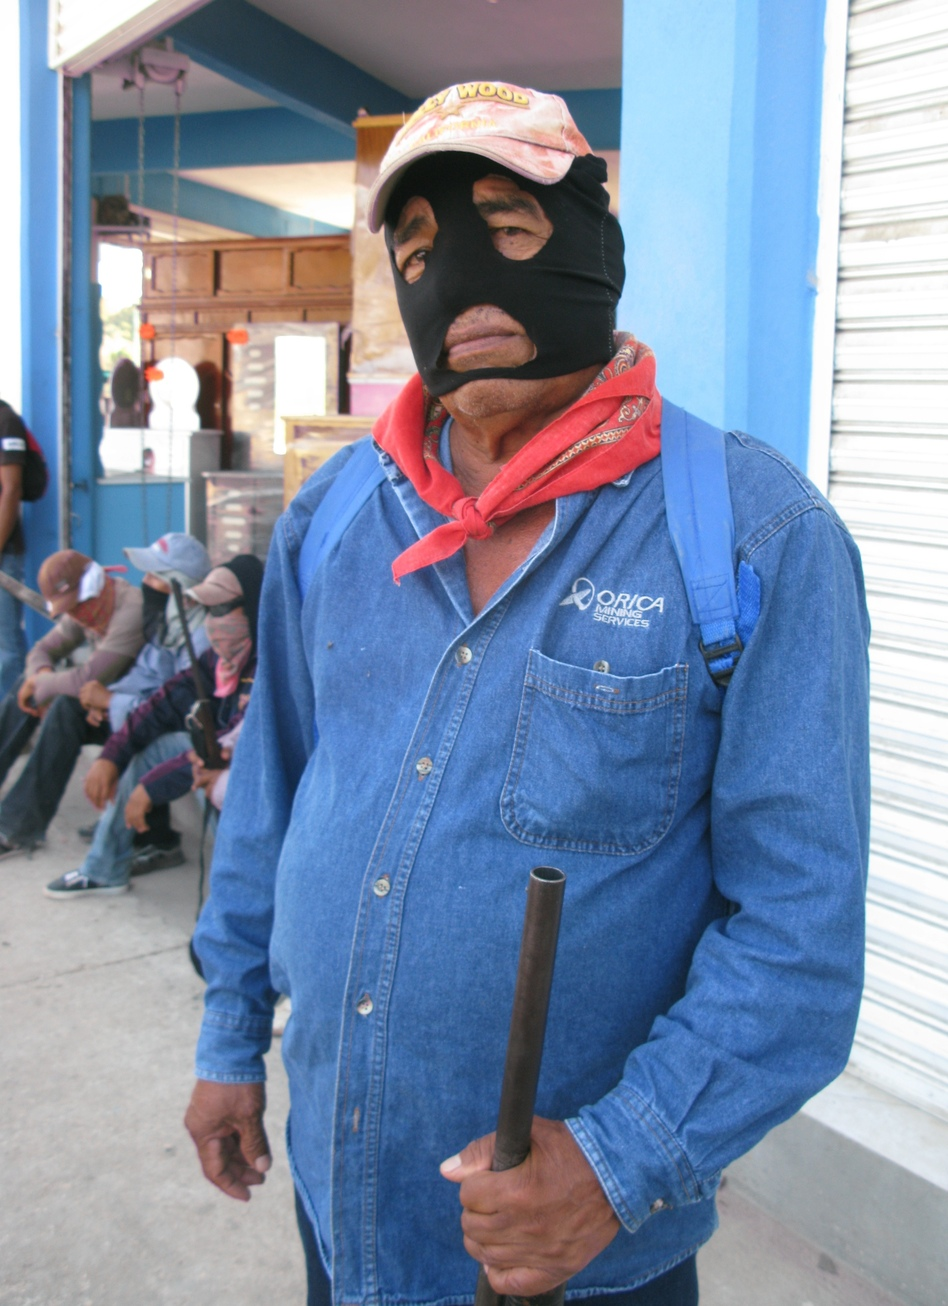 A man who identifies himself as a lower commander in Ayutla's self-defense brigade says residents had no choice but to take up arms. (NPR)